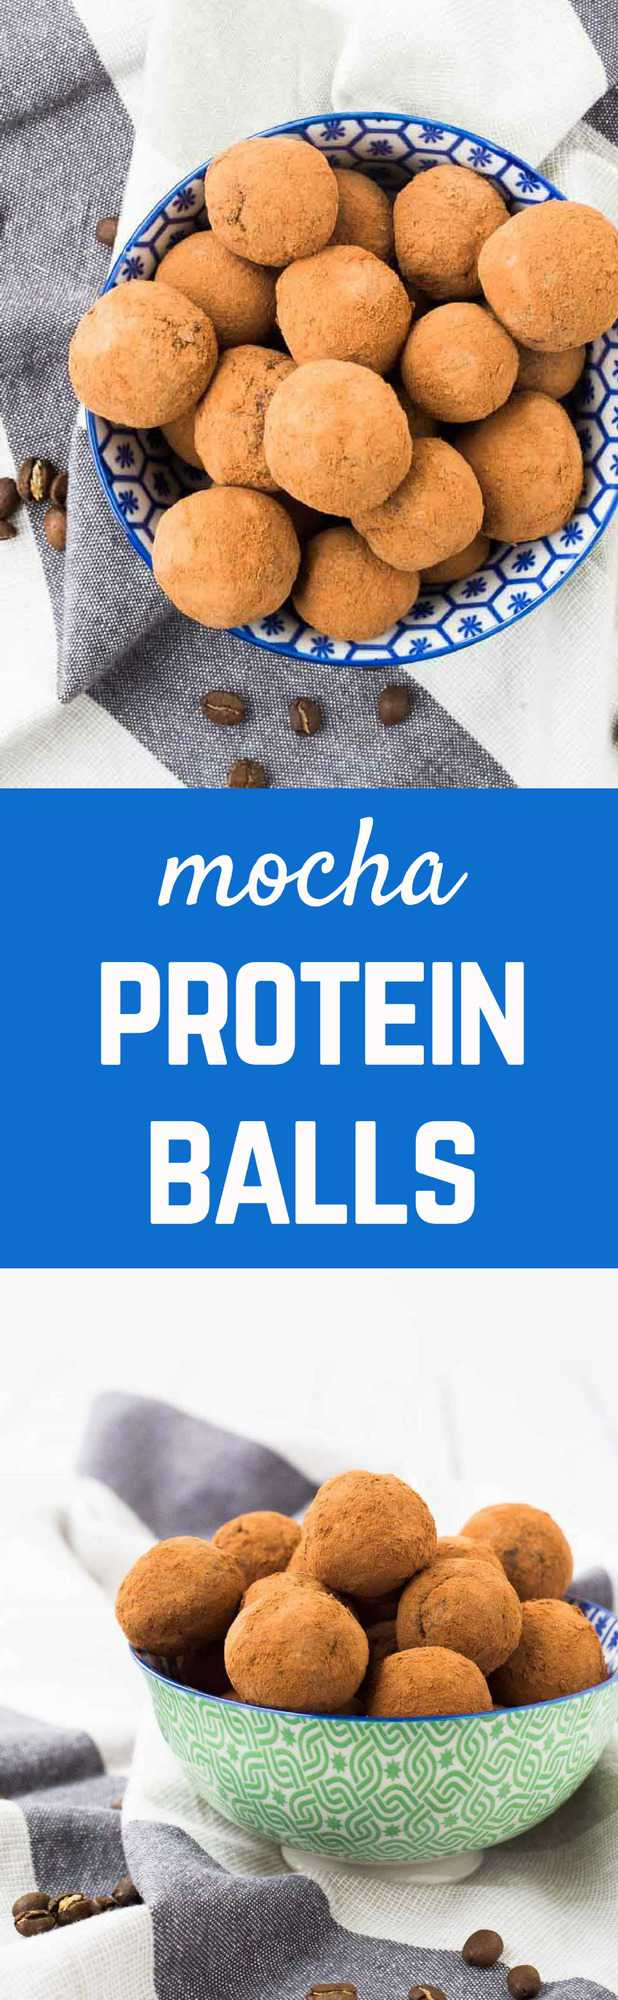 These chocolate protein balls will satisfy your chocolate cravings without a sugar crash later and will give you energy to get through your afternoon! Get the easy snack recipe on RachelCooks.com!